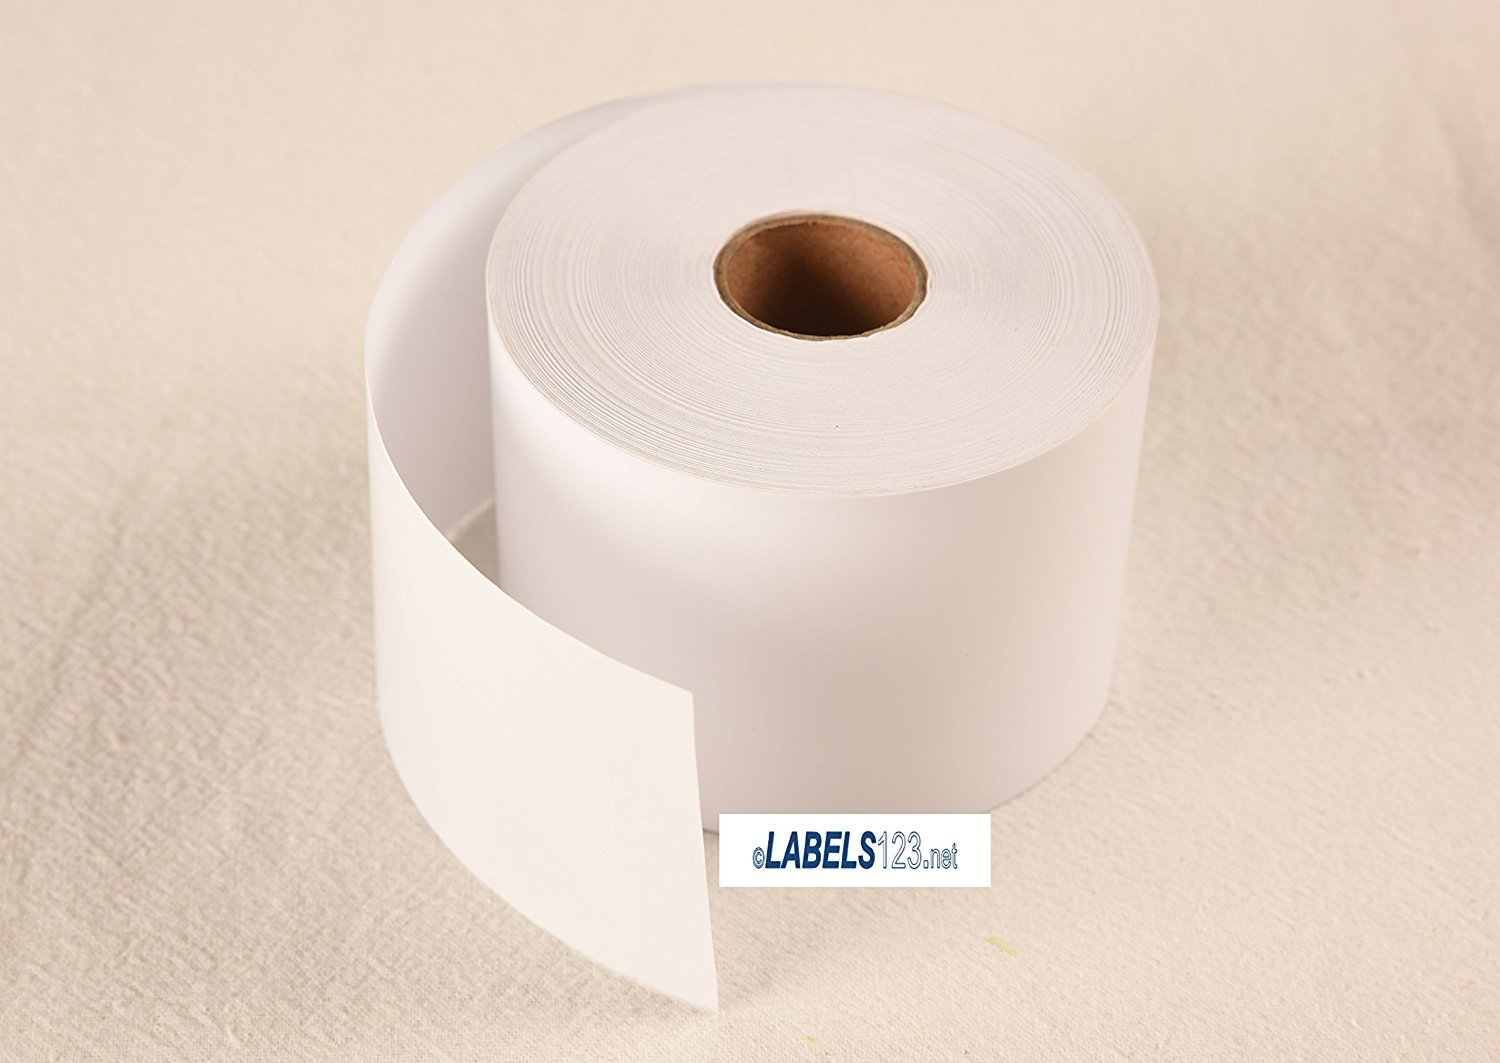 2 Dymo Compatible Rolls Non-adhesive Continuous Receipt Paper Price Tag Rolls White 450 Twin Turbo 30270